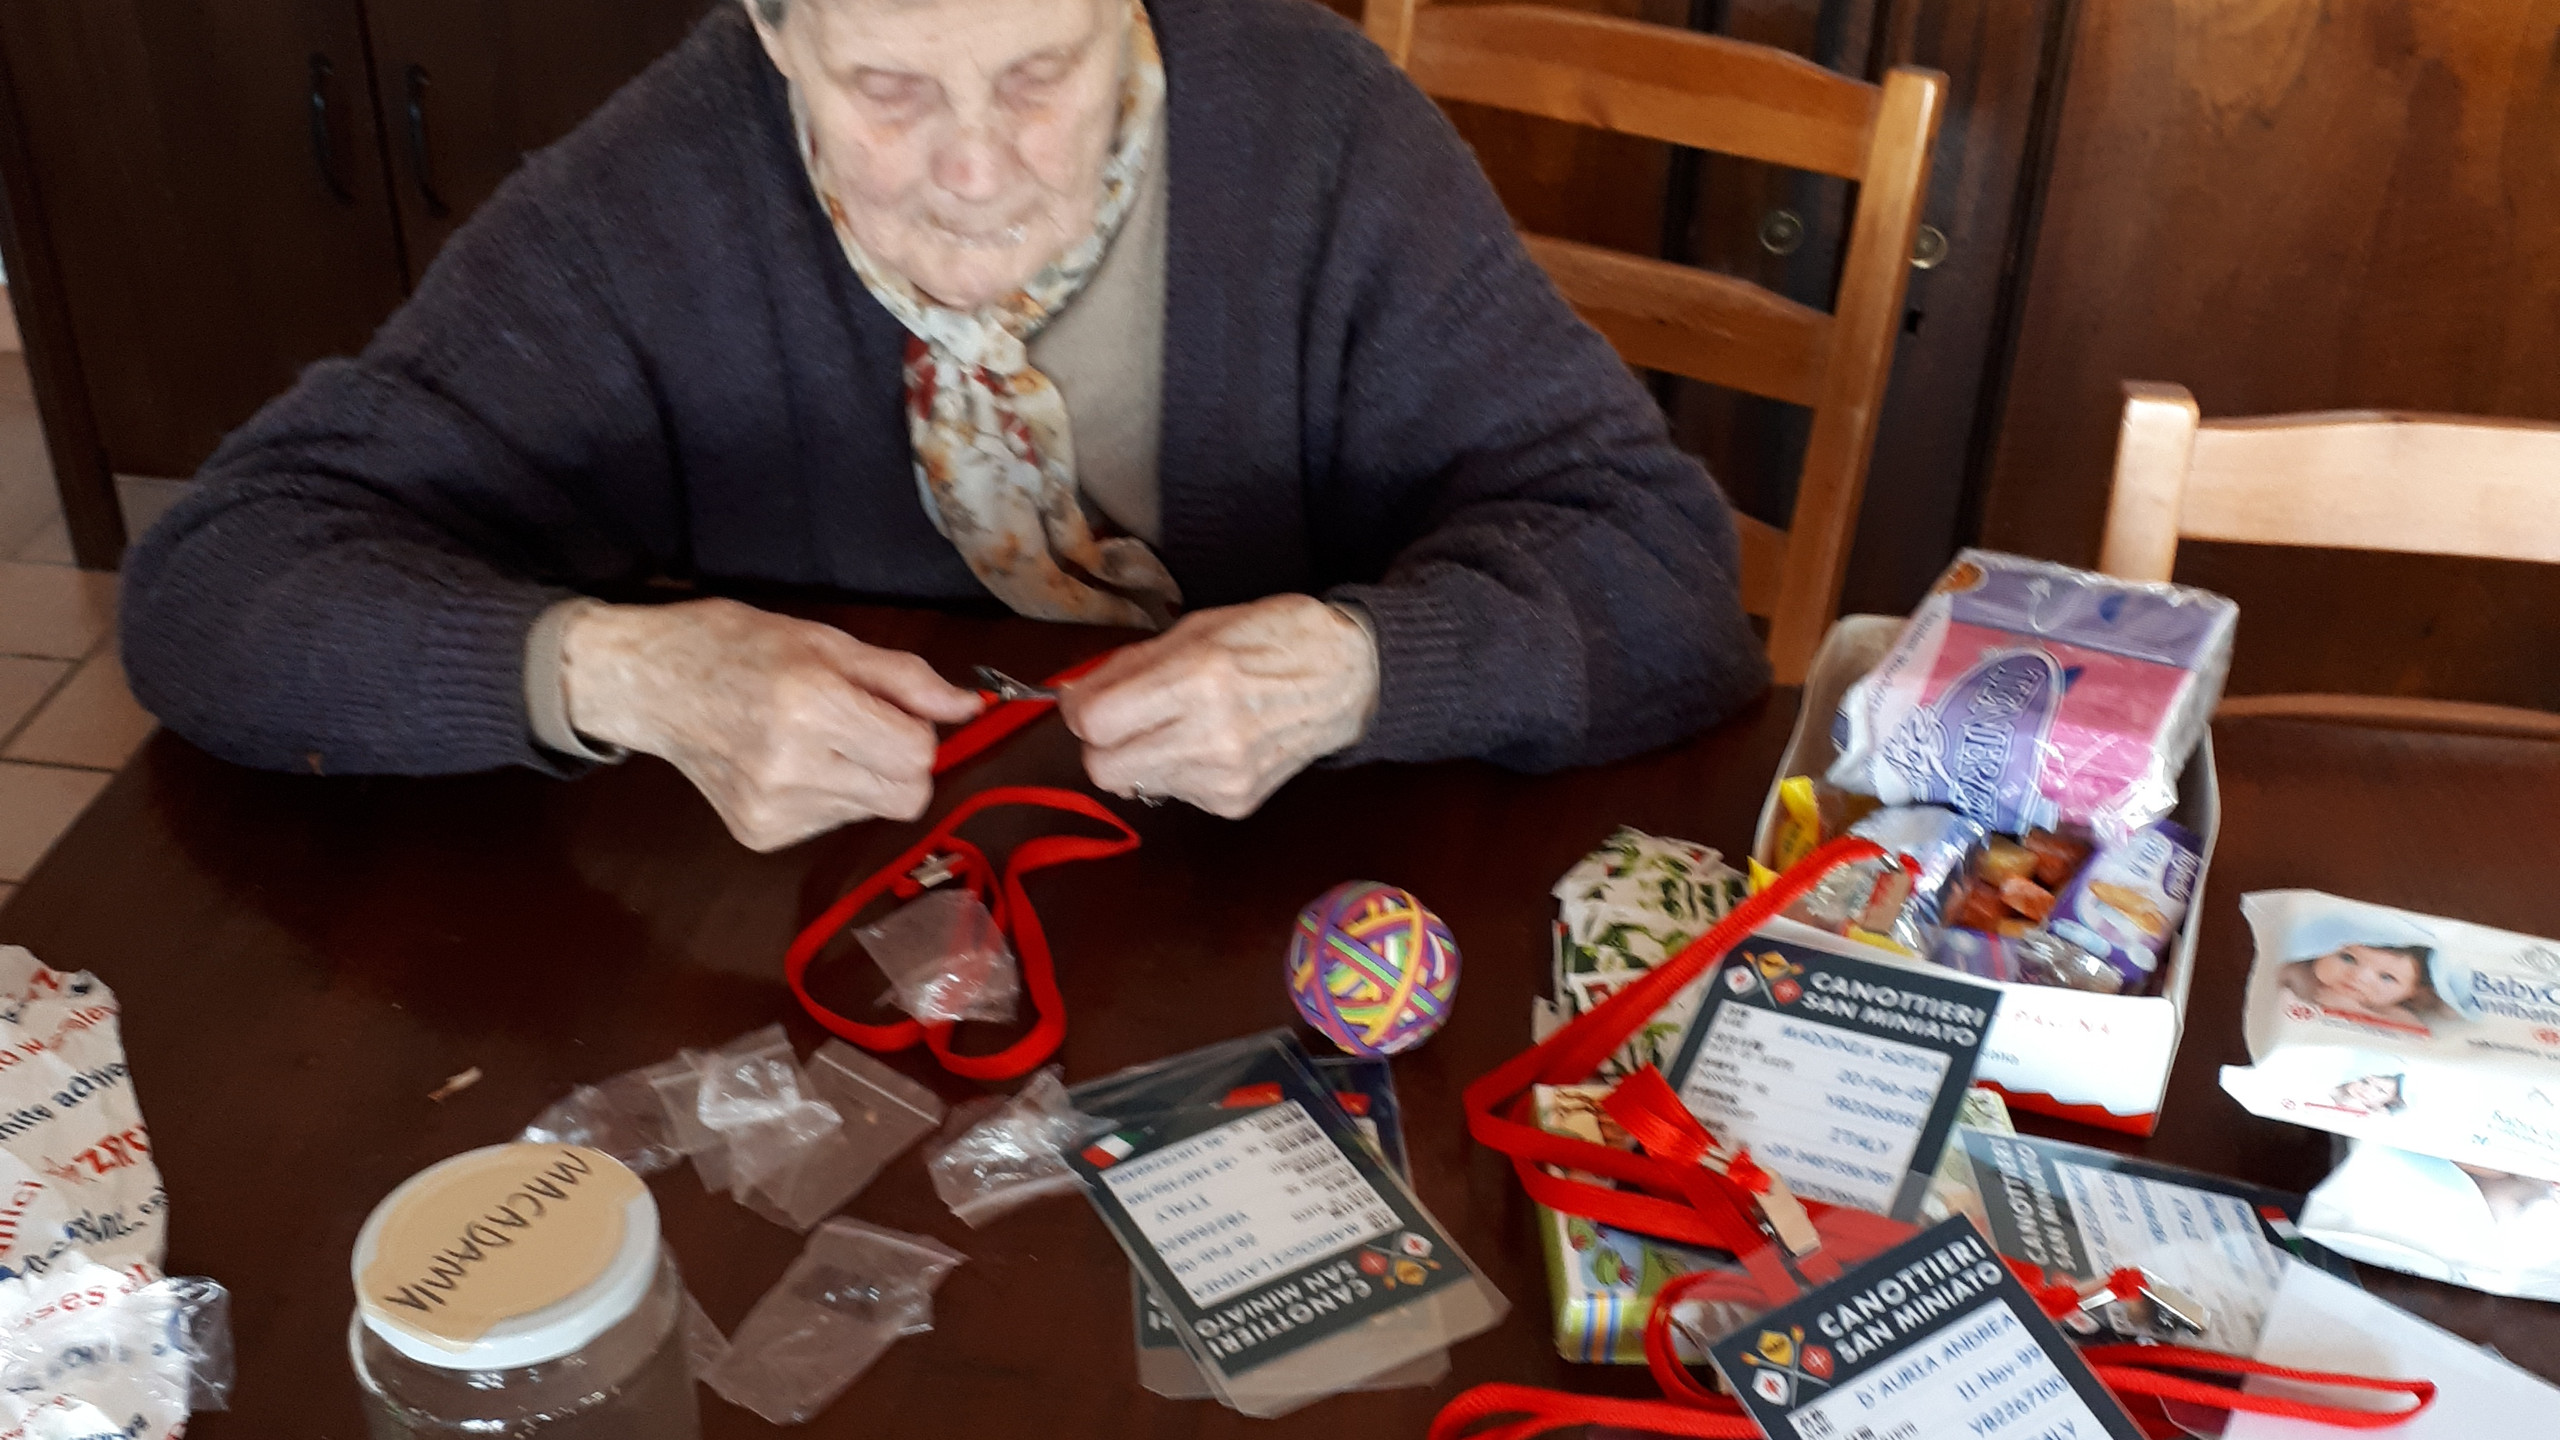 By April 27th, everyone was involved in getting the show on the road. Even Nonna Eda, here helping to assemble the namecards.